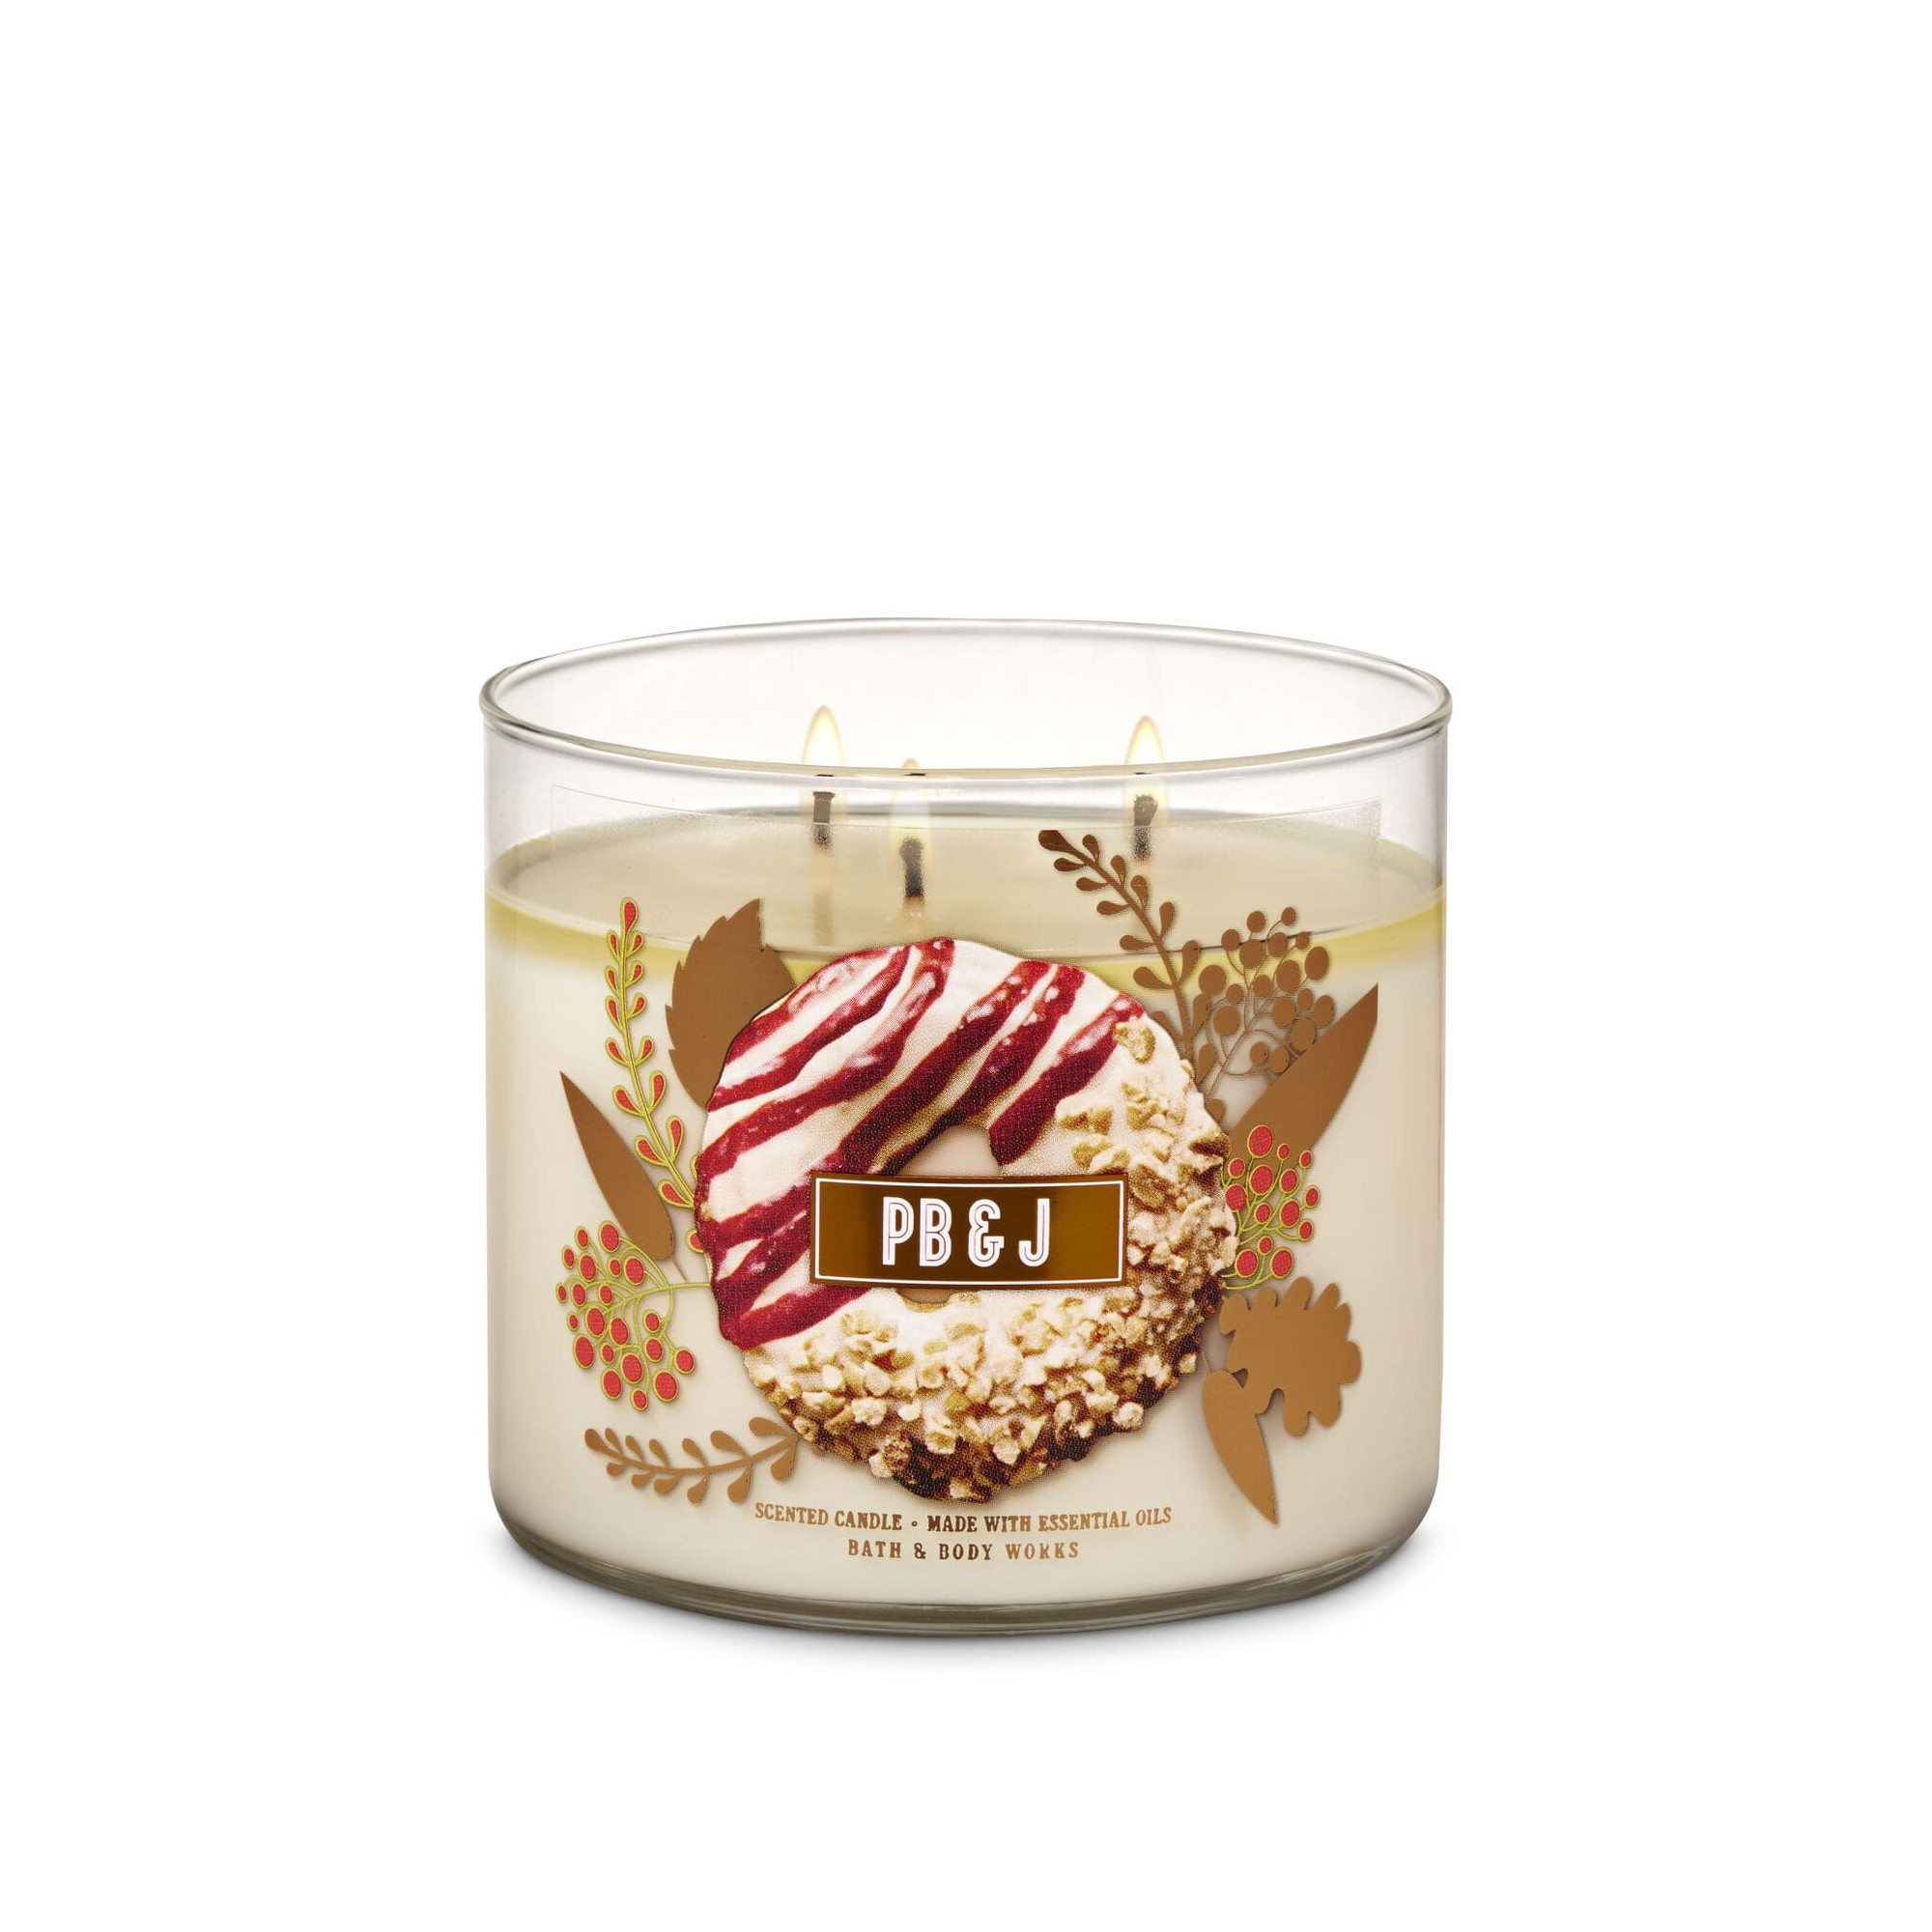 Bath & Body Works PB & J 3 Wick Scented Candle